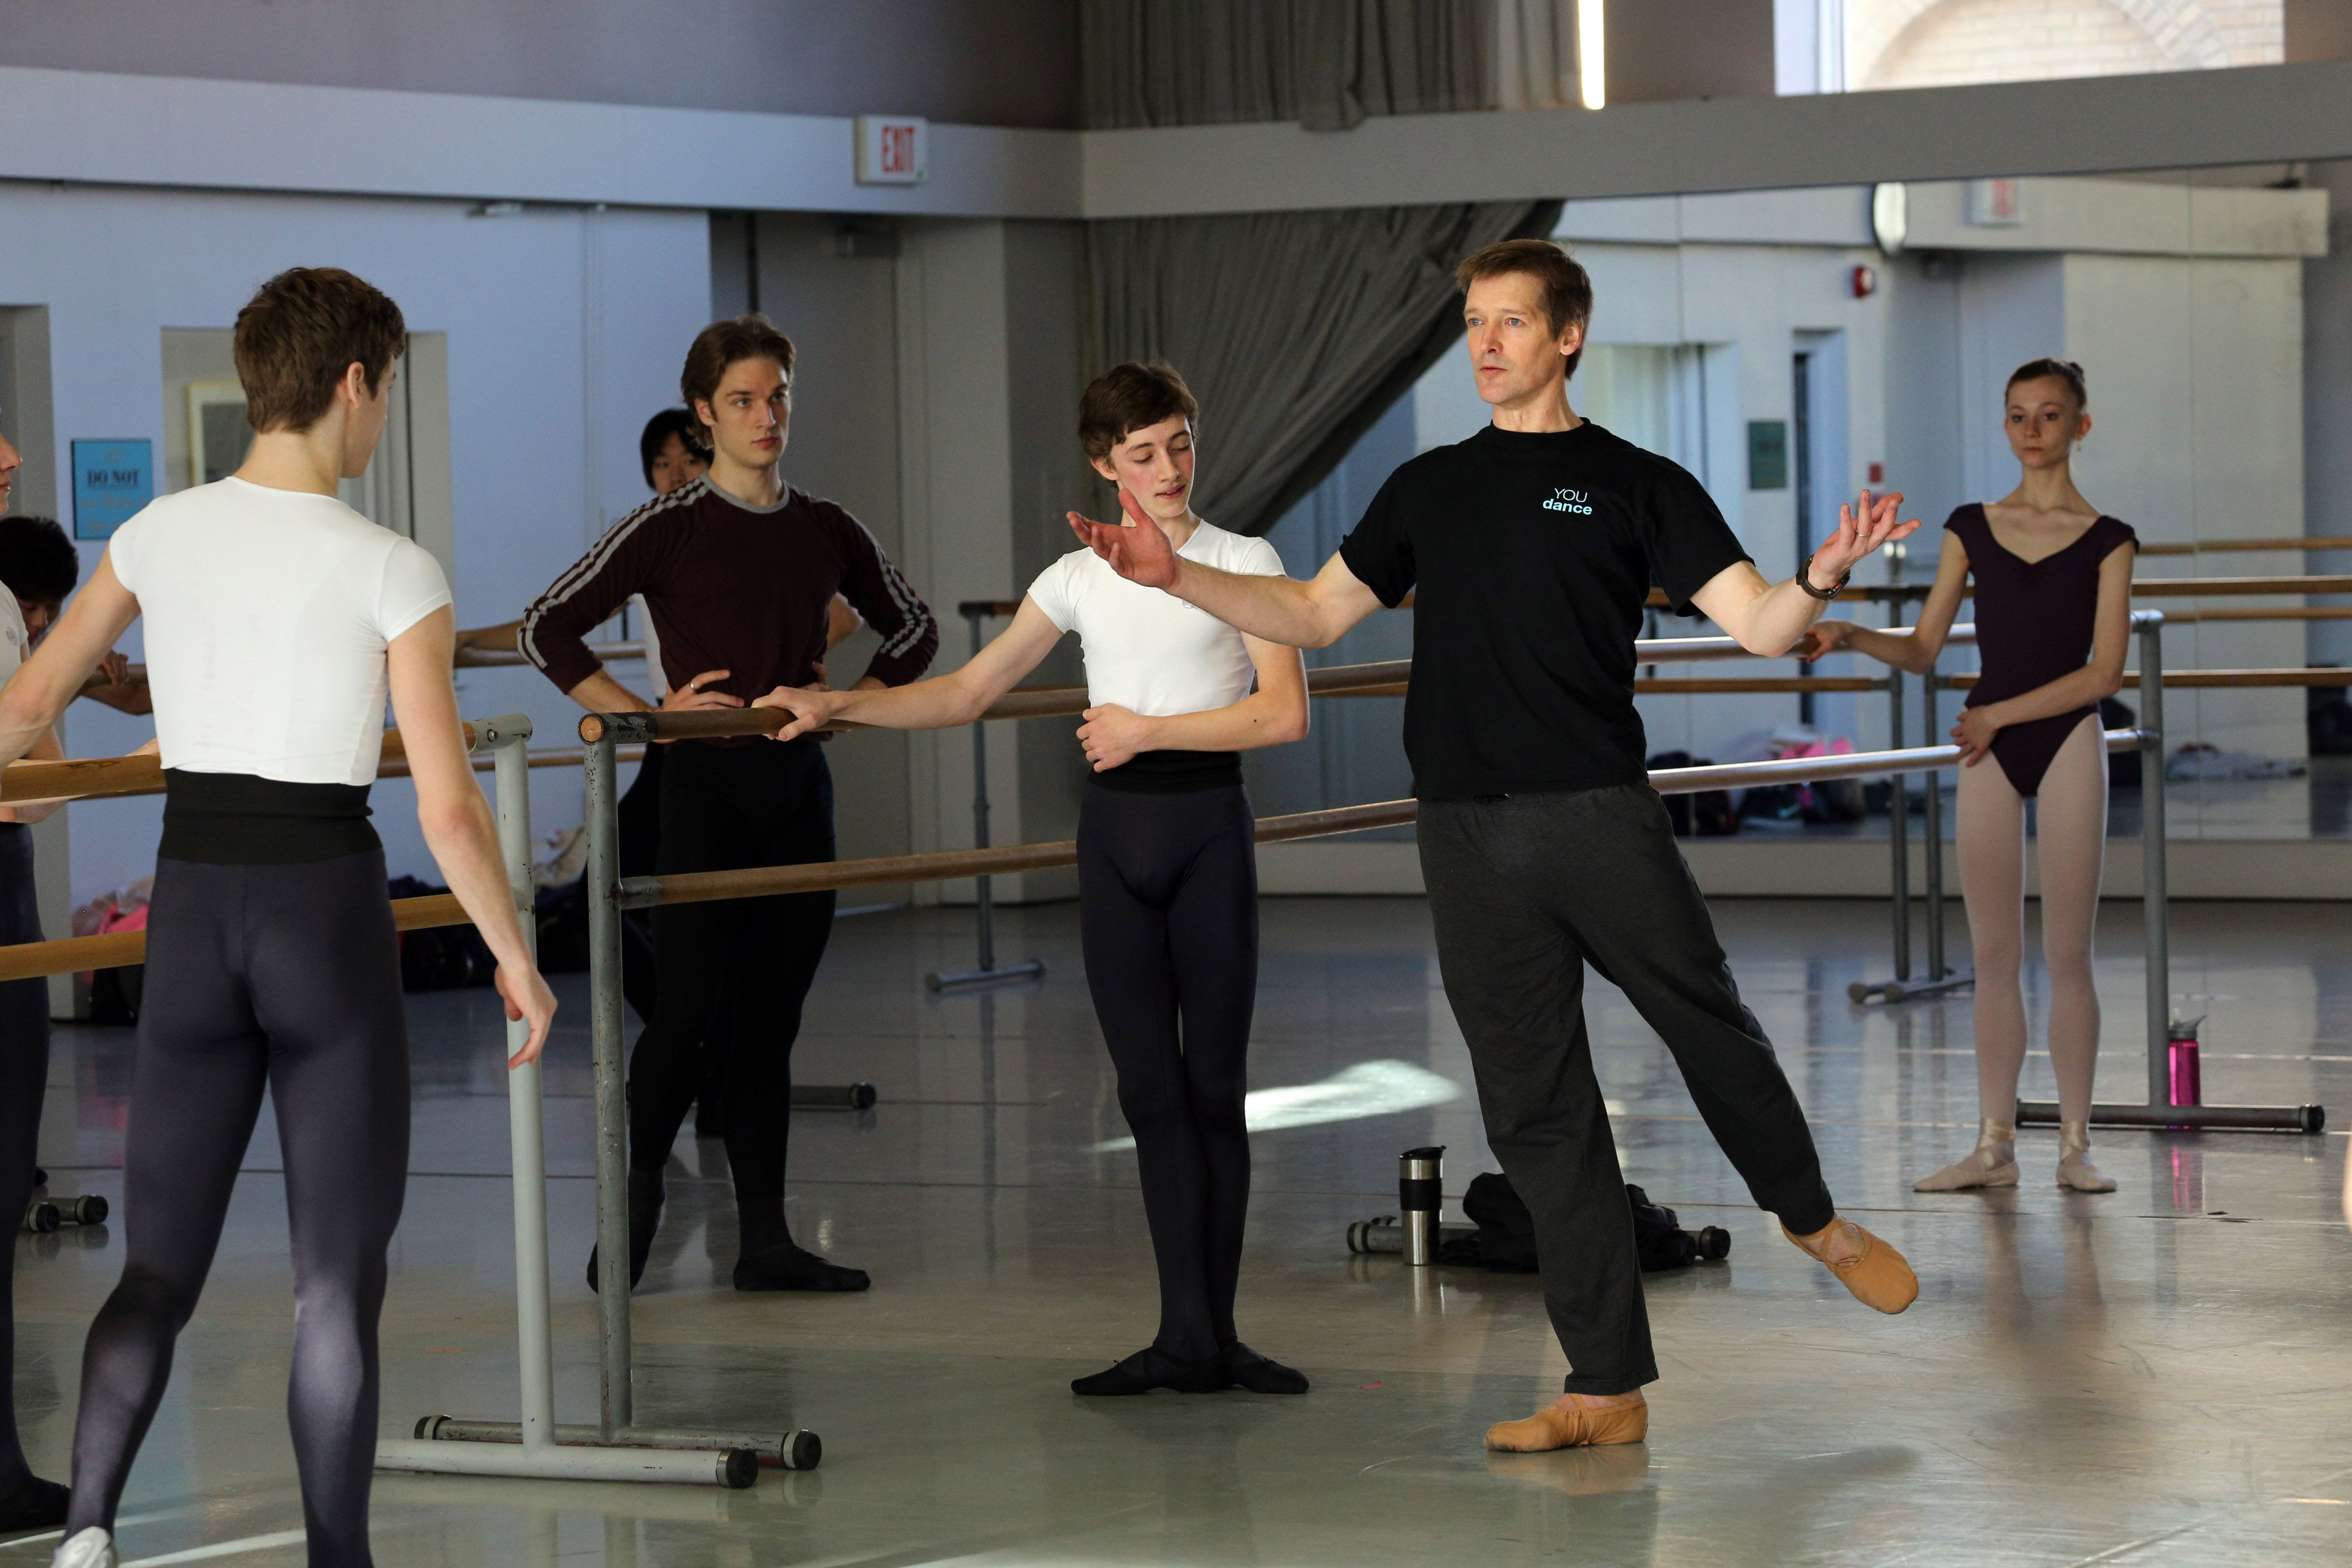 Lindsay Fischer The National Ballet Of Canada Ballet Master And Artistic Director Of You Dance Conducting A Master Class For Kirov Master Class Kirov Ballet